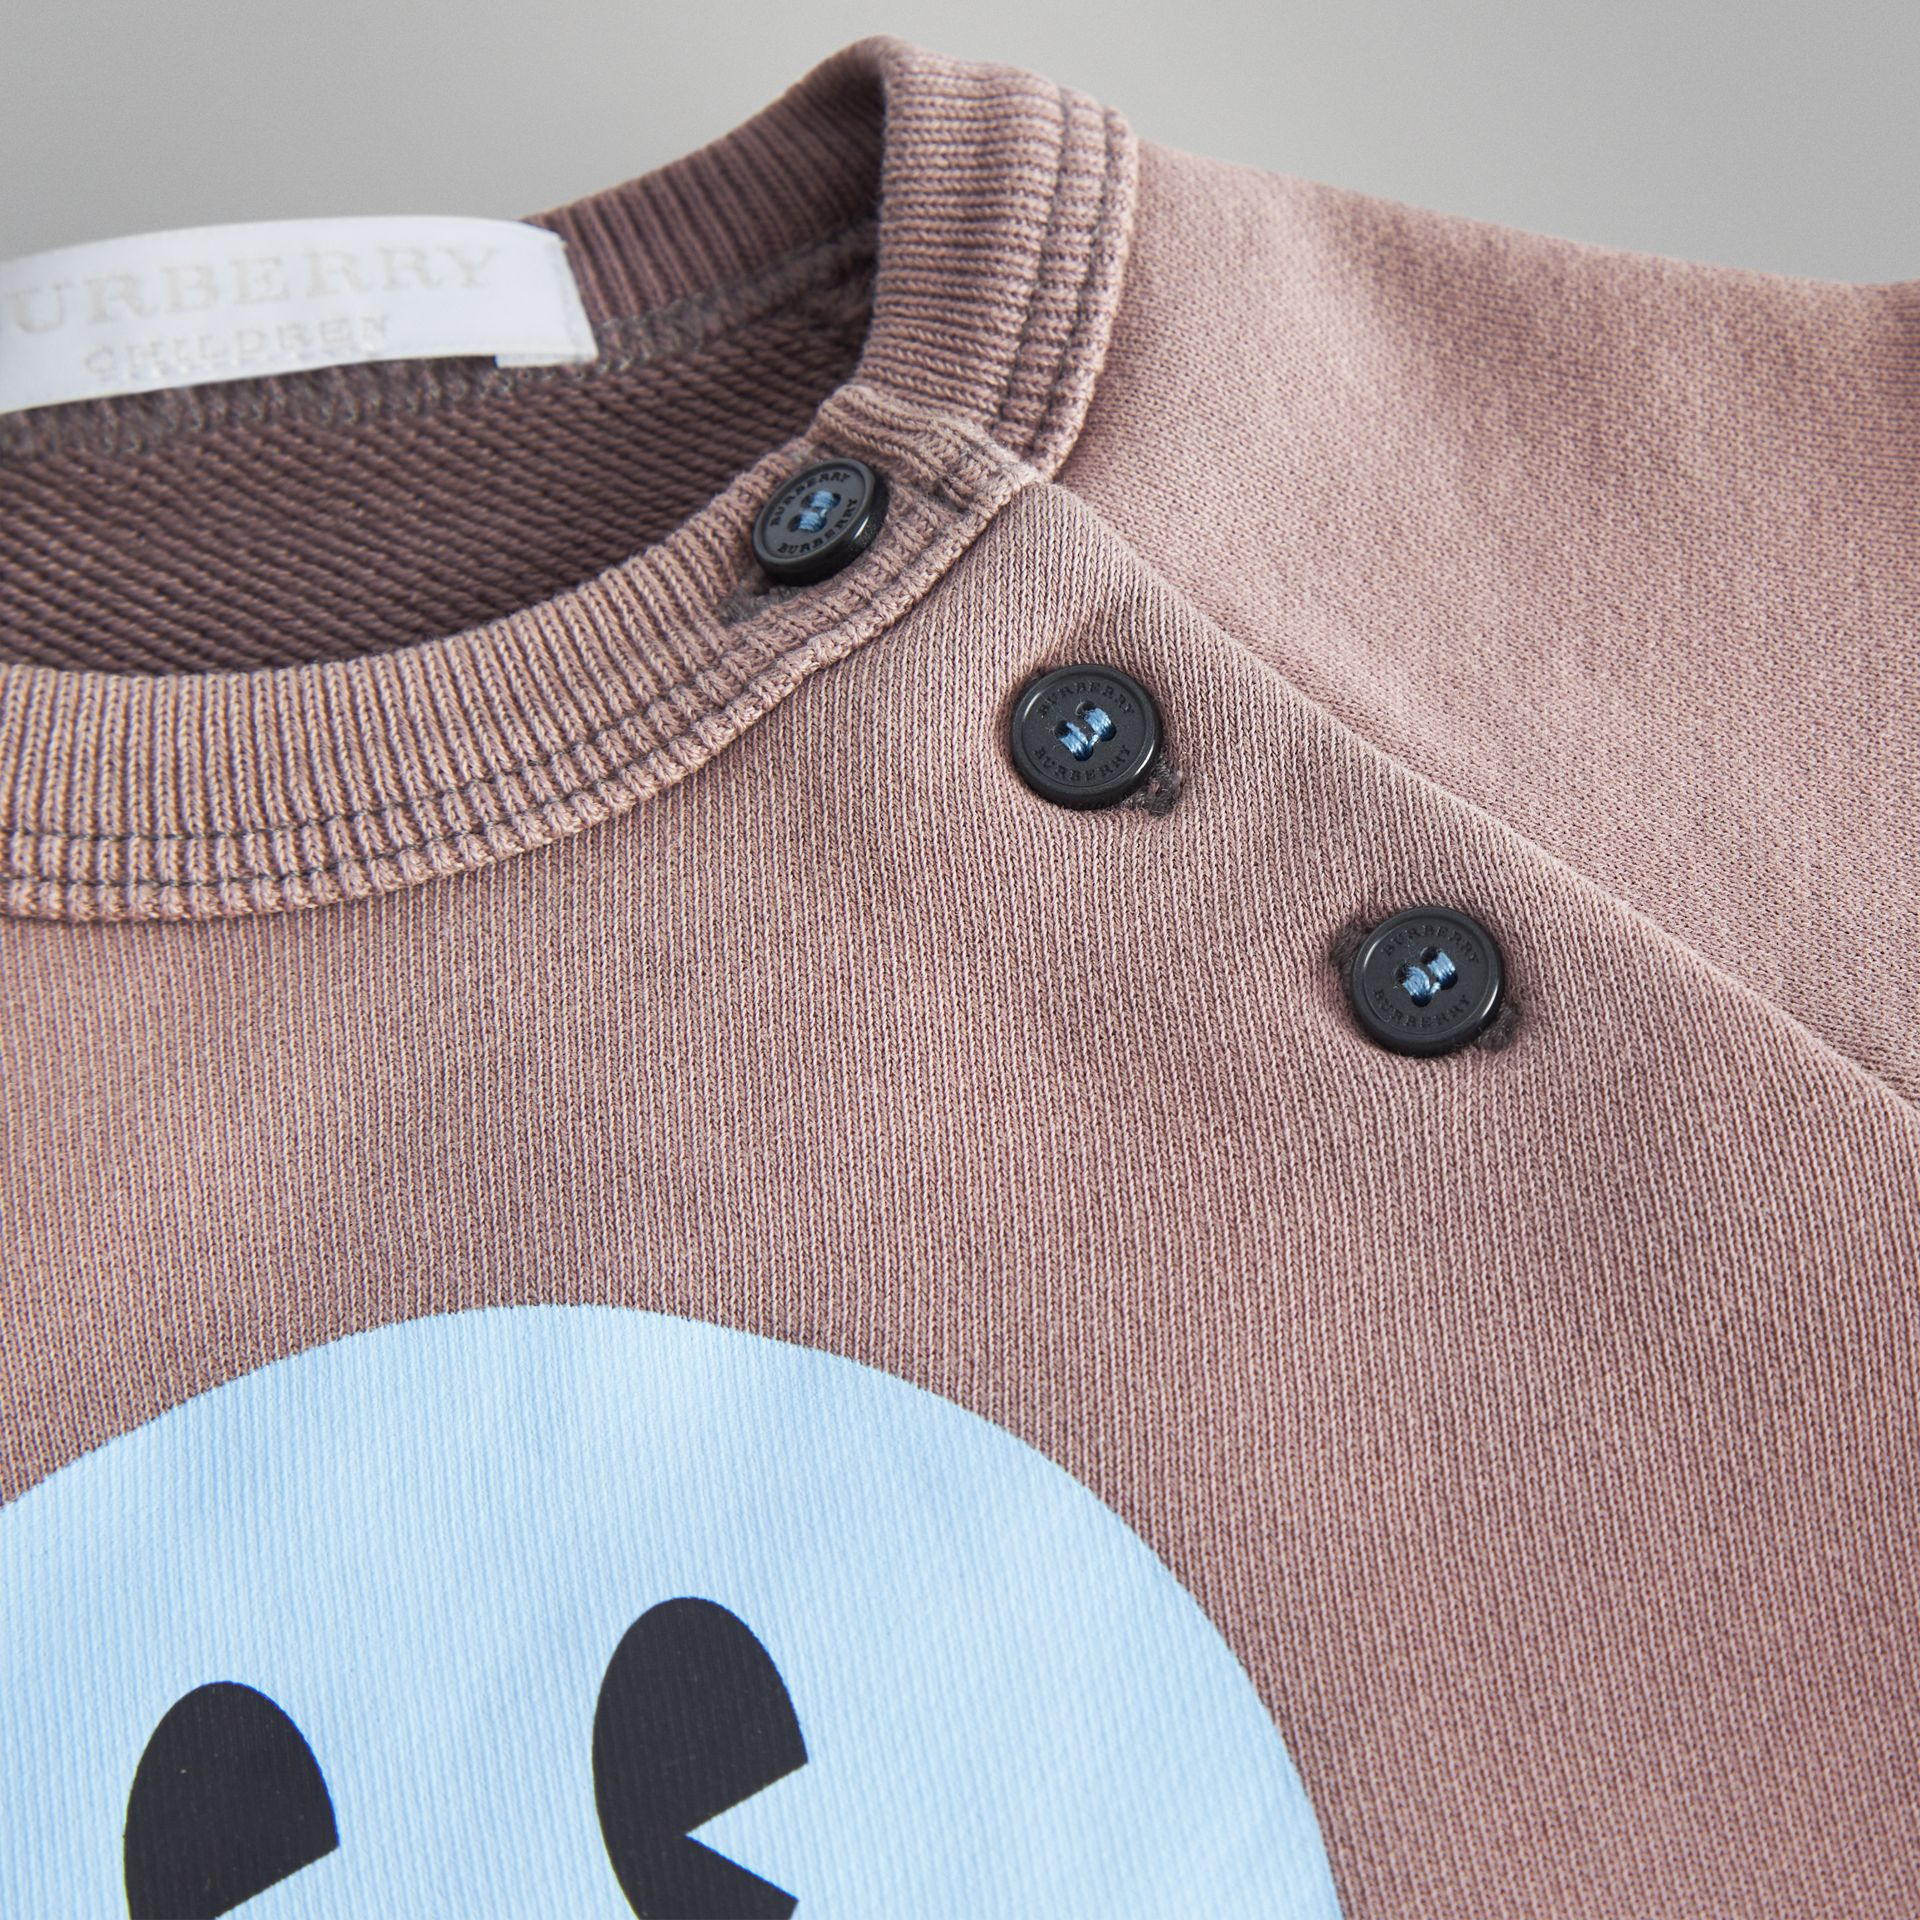 Smiley Face Print Cotton Sweatshirt in Mauve - Children | Burberry United States - gallery image 1